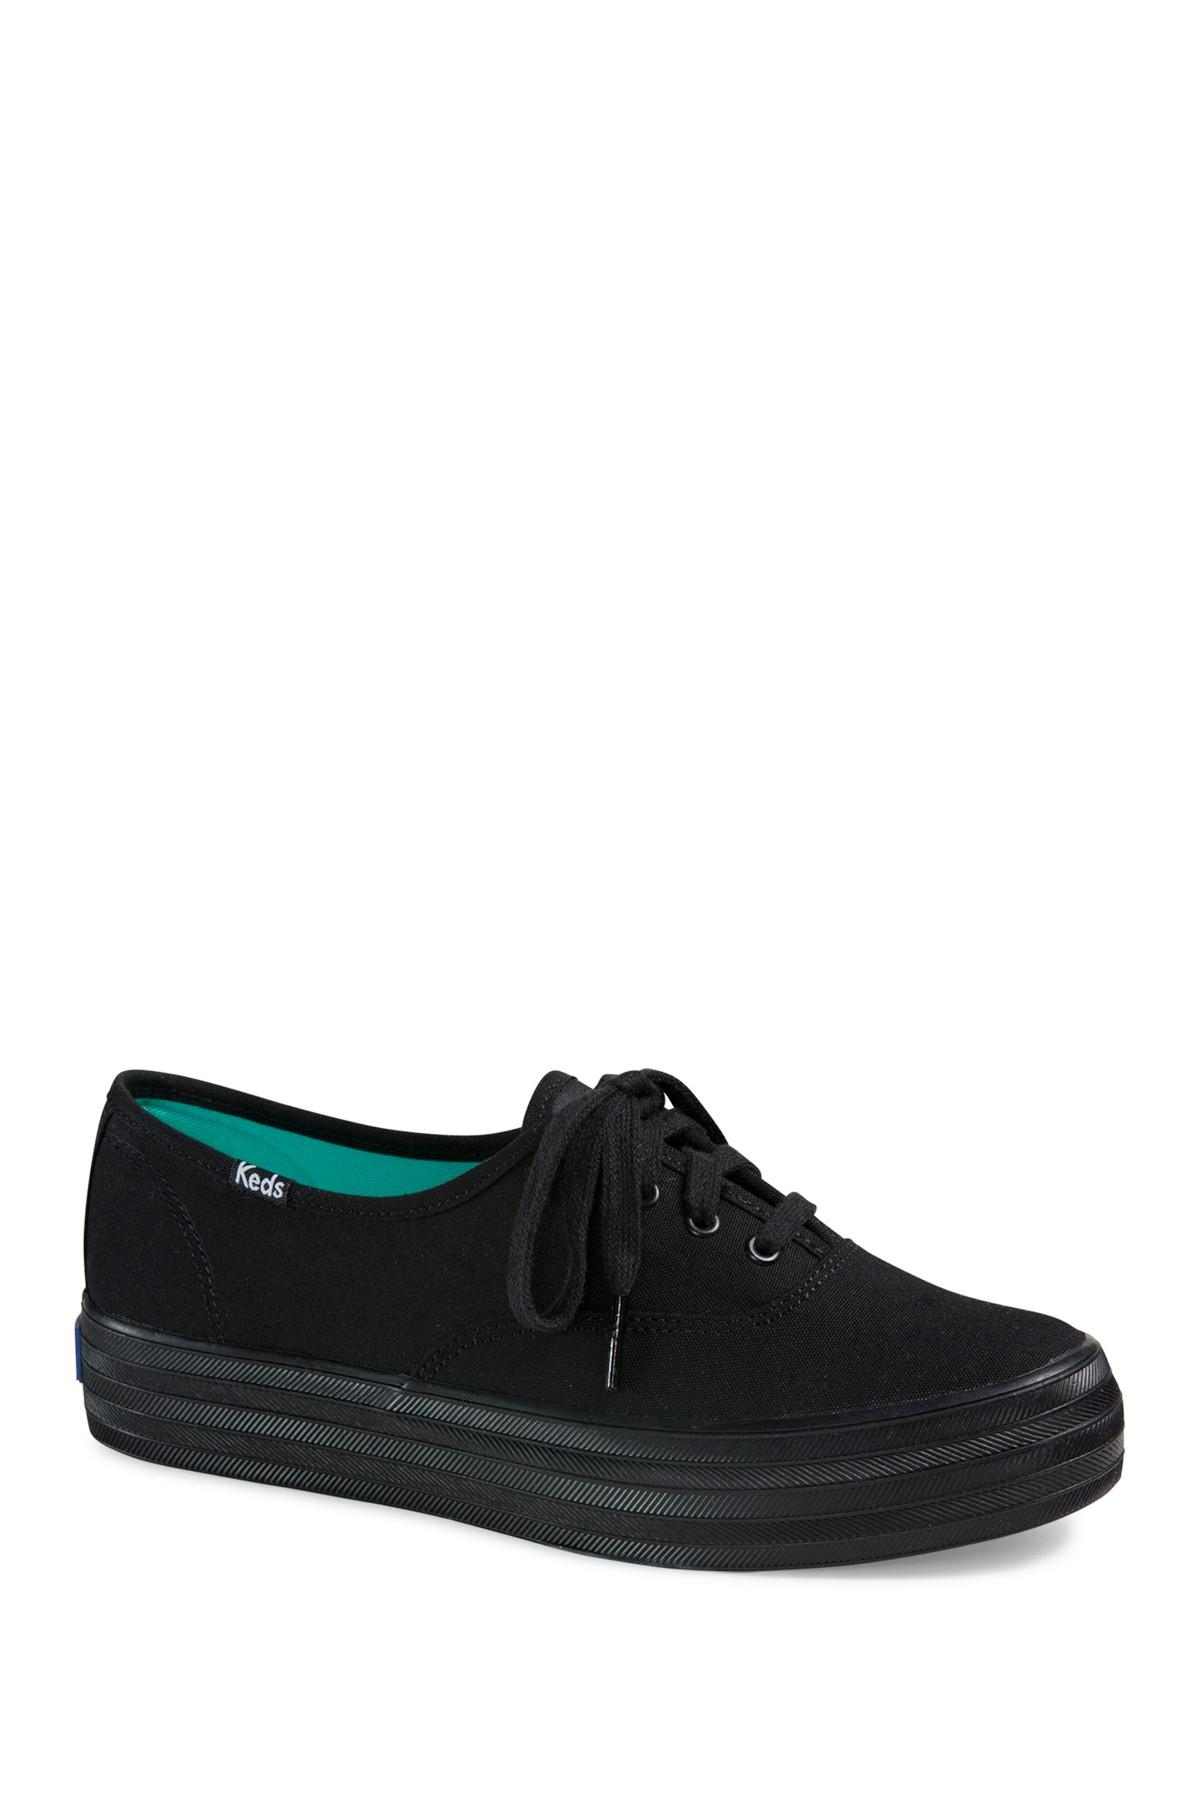 Keds Triple Platform Sneaker in Black